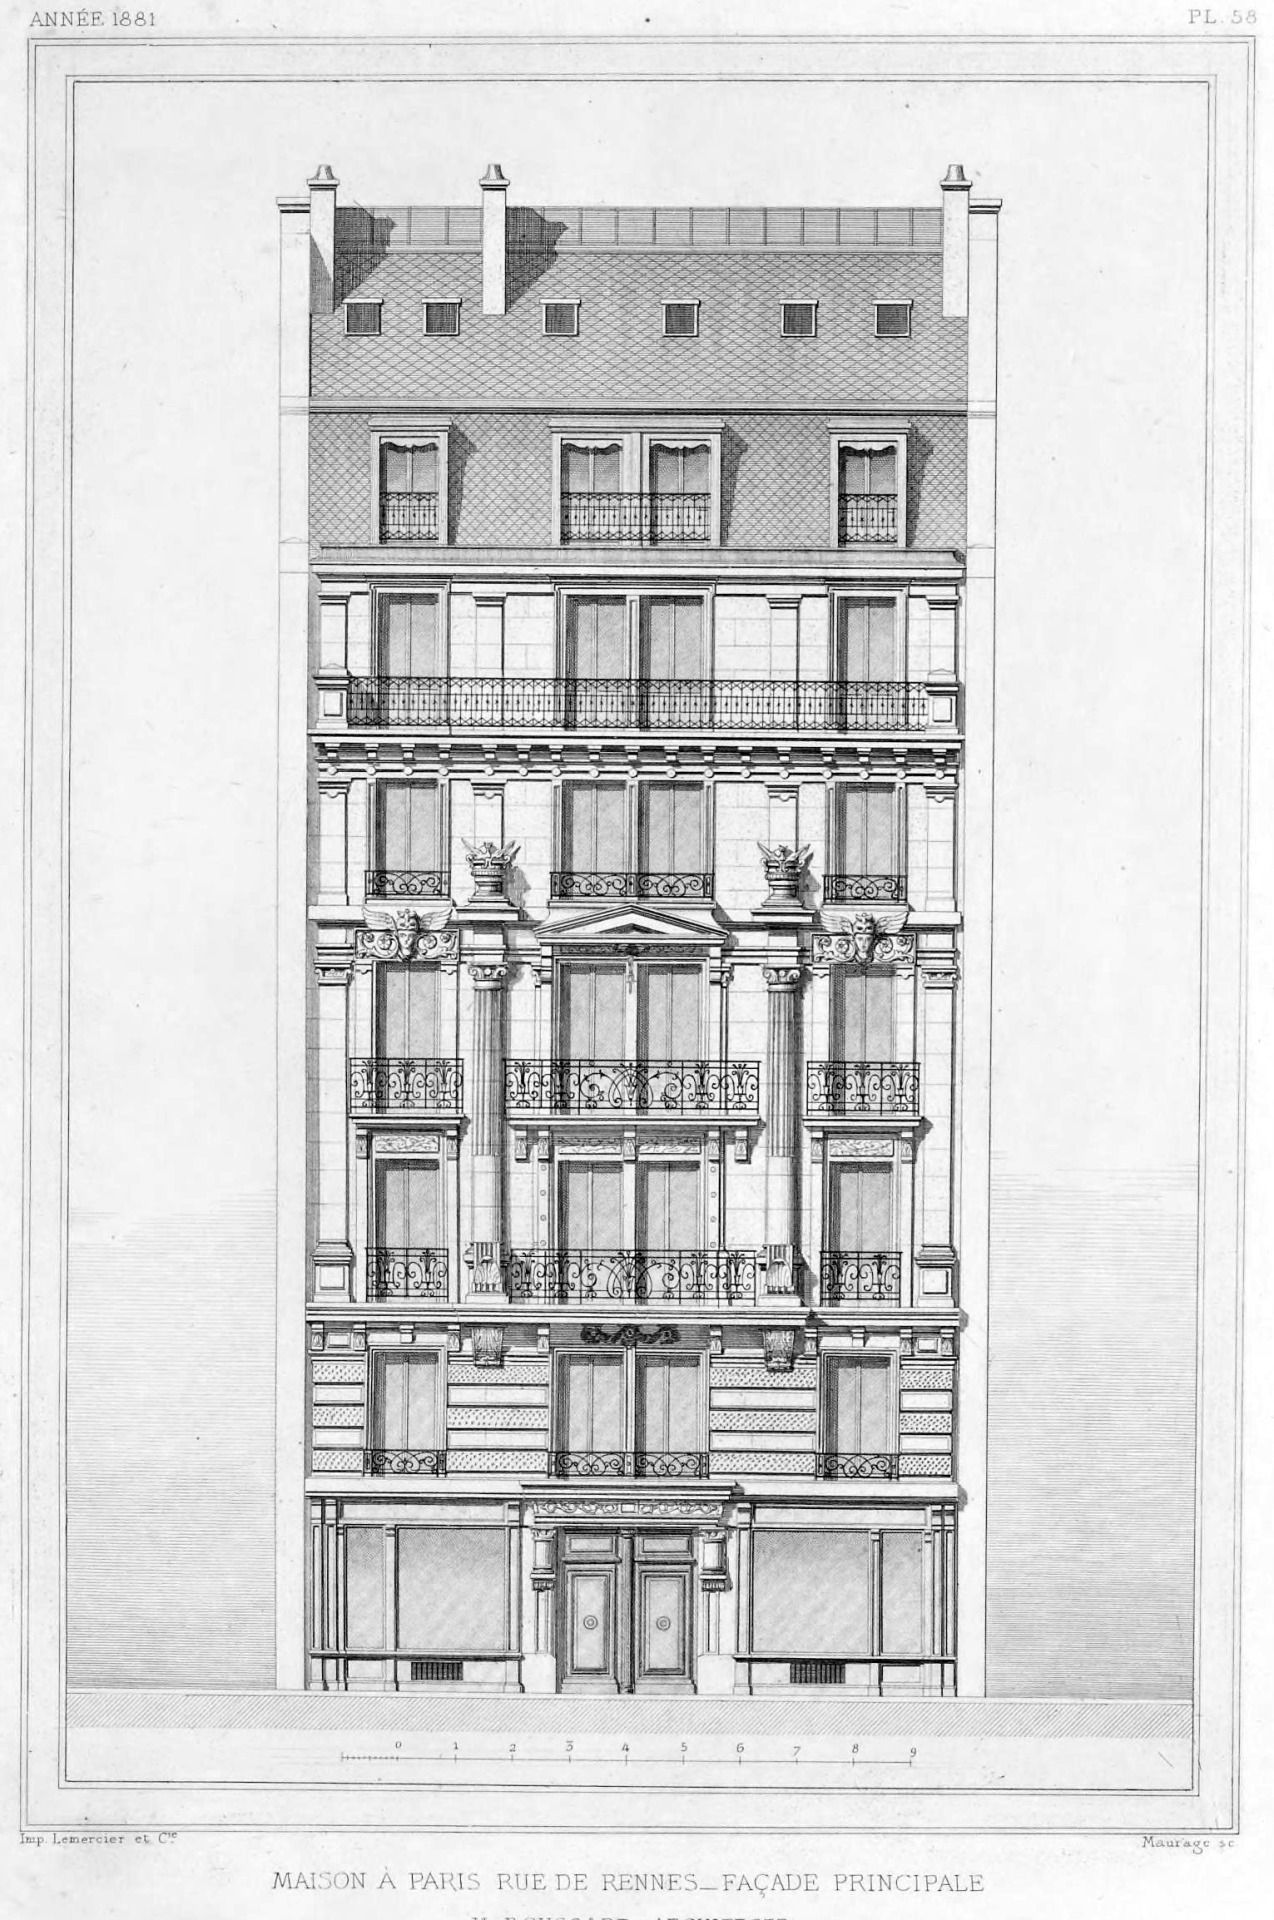 Elevation of a residential building on rue de rennes for Residential construction drawings